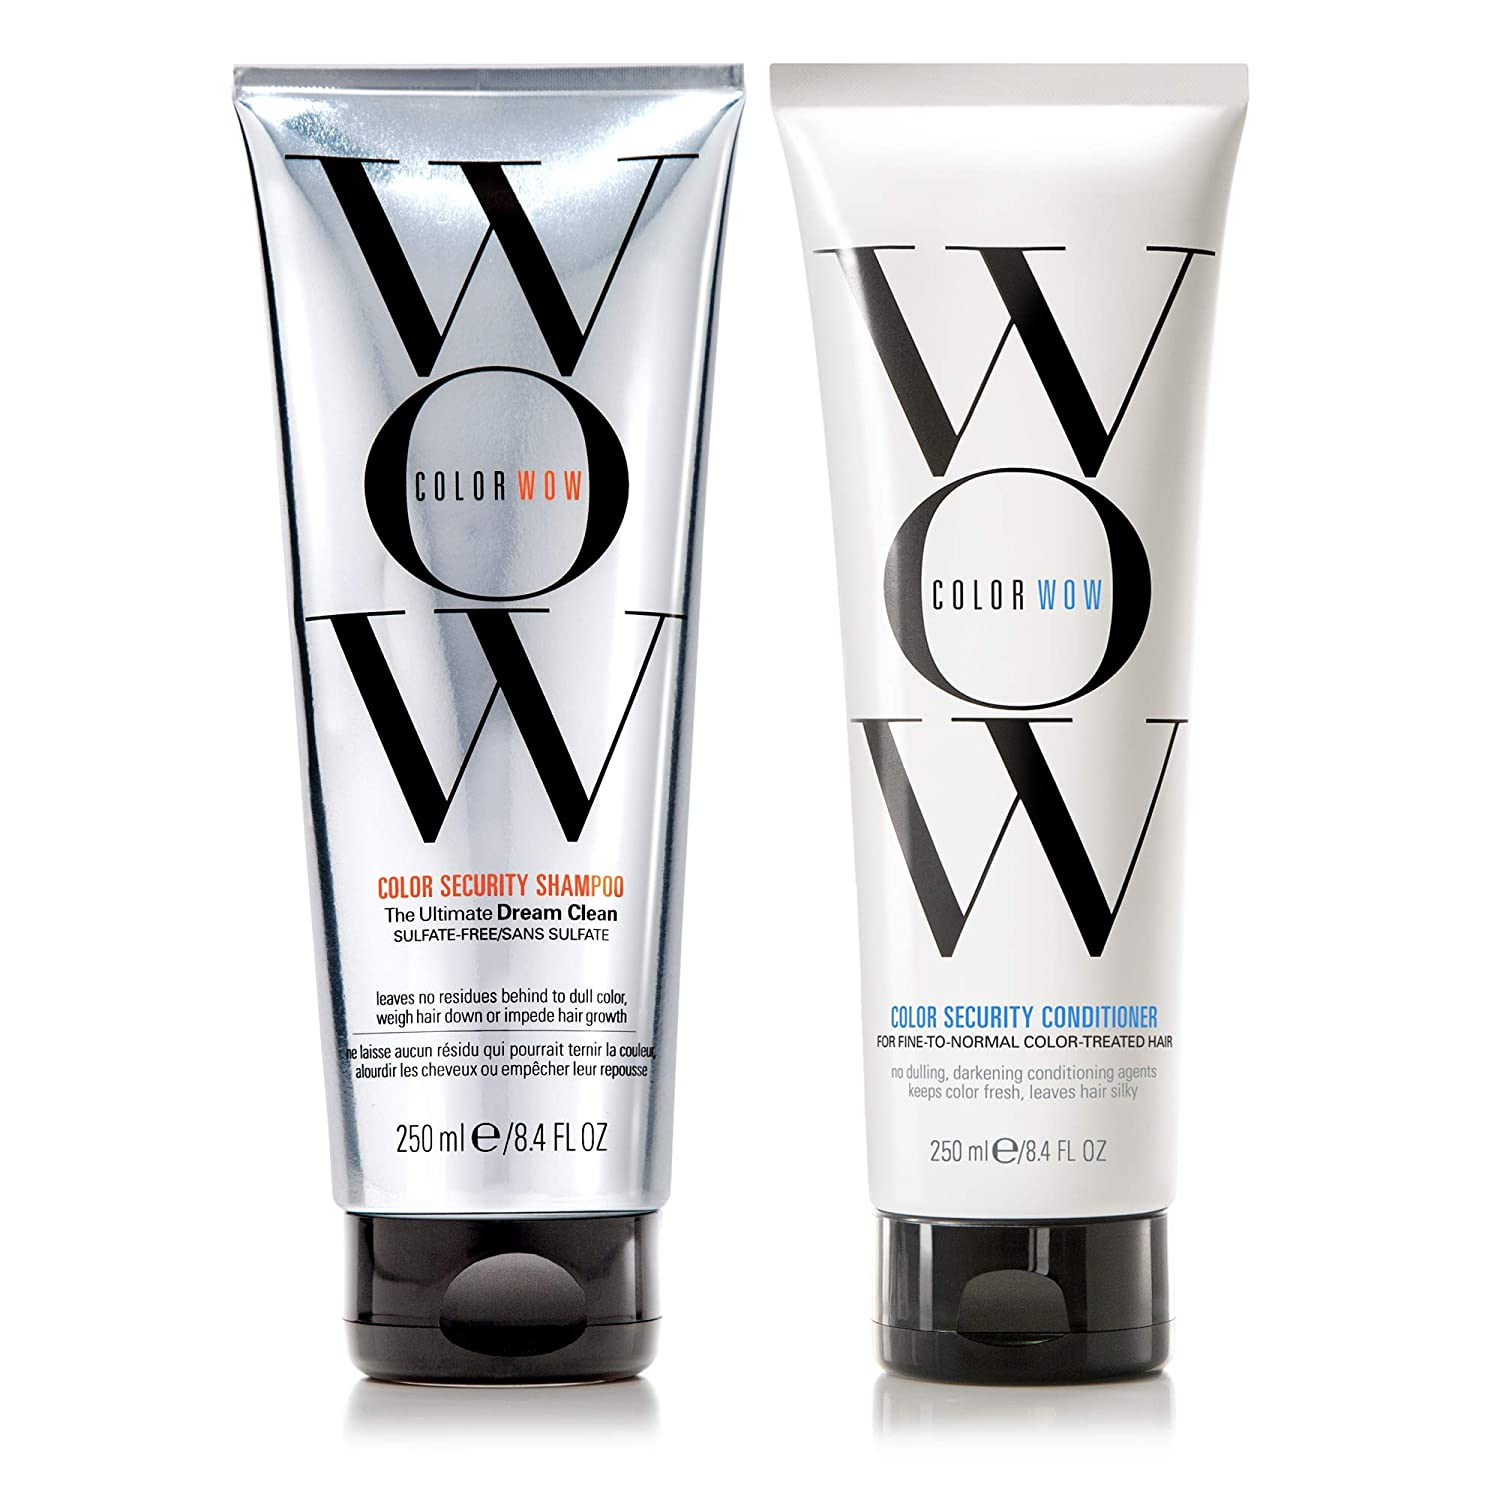 COLOR WOW Color Security Shampoo and Conditioner, Fine to Normal Hair, Duo Set, Sulfate free, for Color Treated Hair, Color Safe, 8.4 fl. oz.